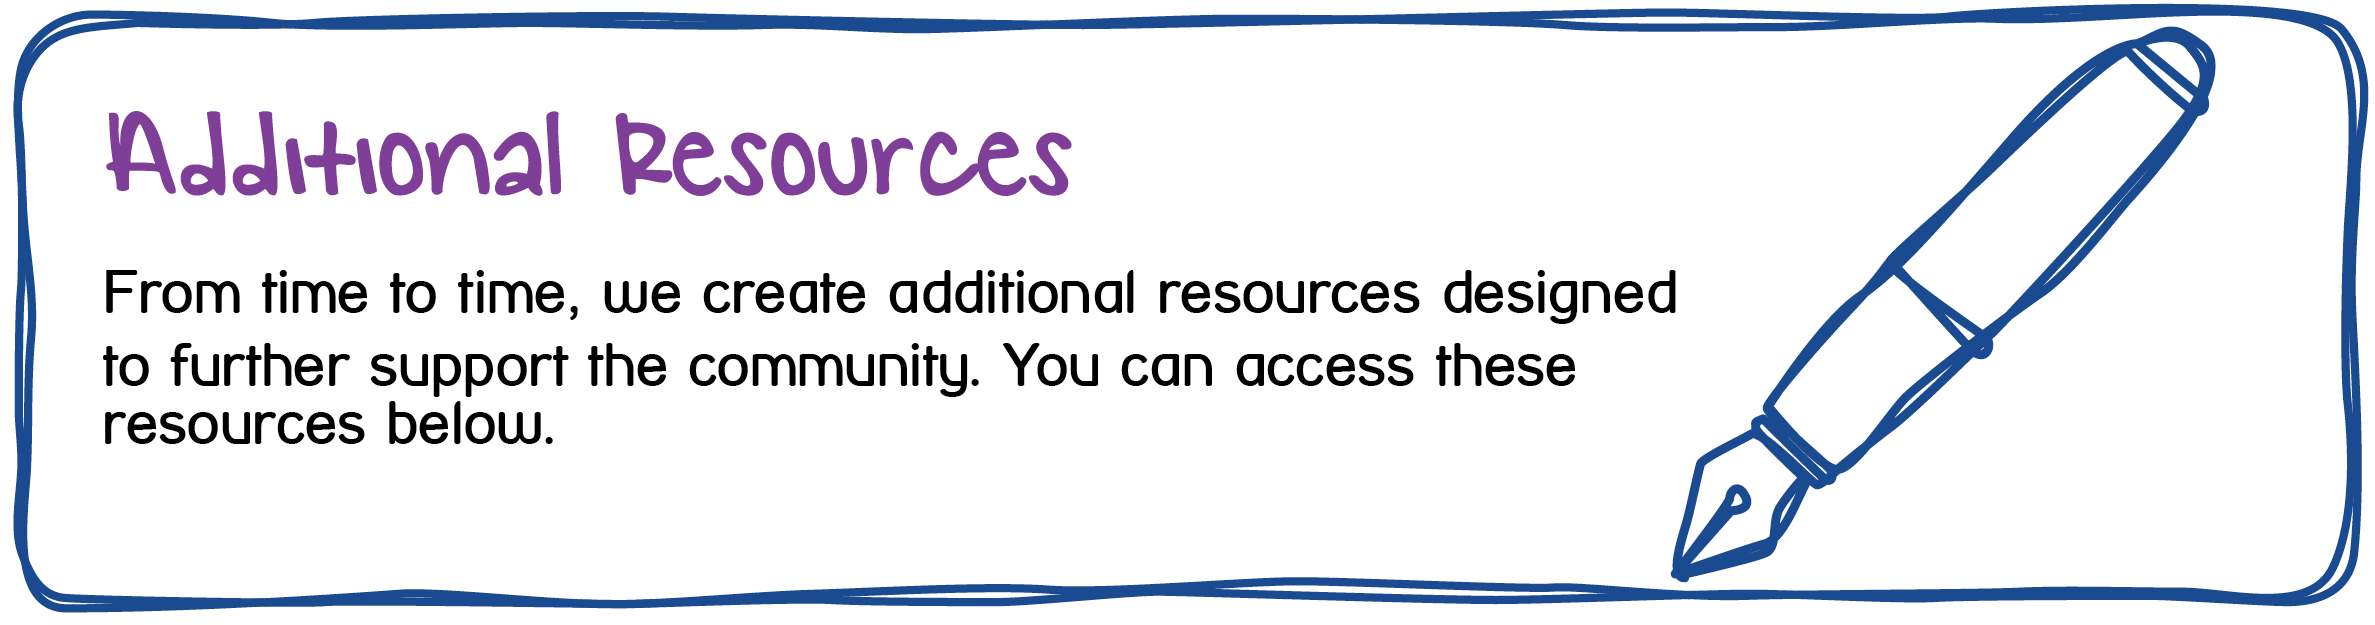 Resources - MMK Mind's additional resources.